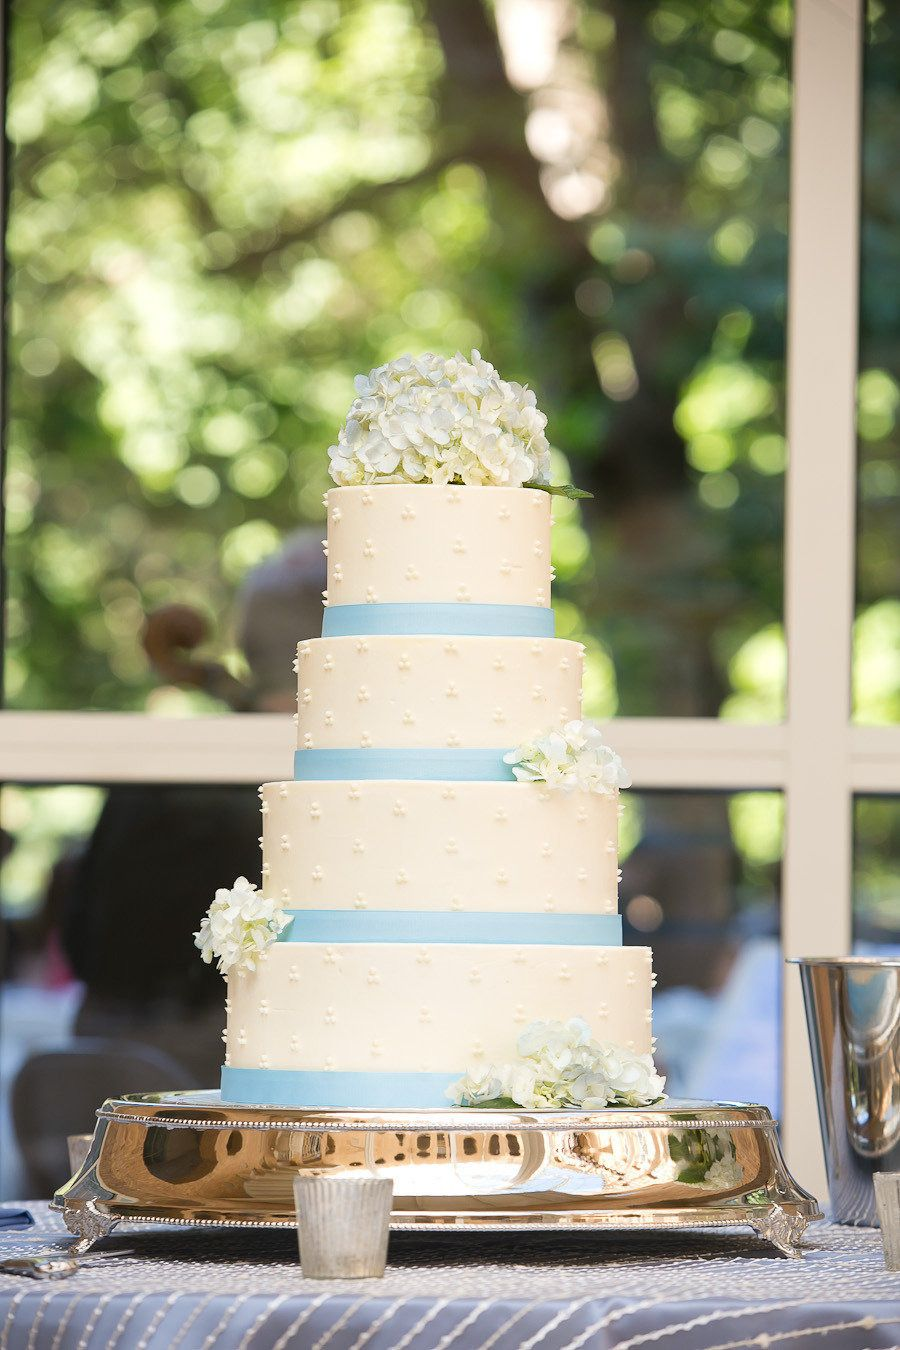 Gorgeous wedding...thank you for choosing Gabriel's Desserts for your wedding cake!  Photography: Drew Newman Photography - drewnewman.us  Read More: http://www.stylemepretty.com/2013/08/16/fernbank-museum-of-natural-history-wedding-from-drew-newman-photography/